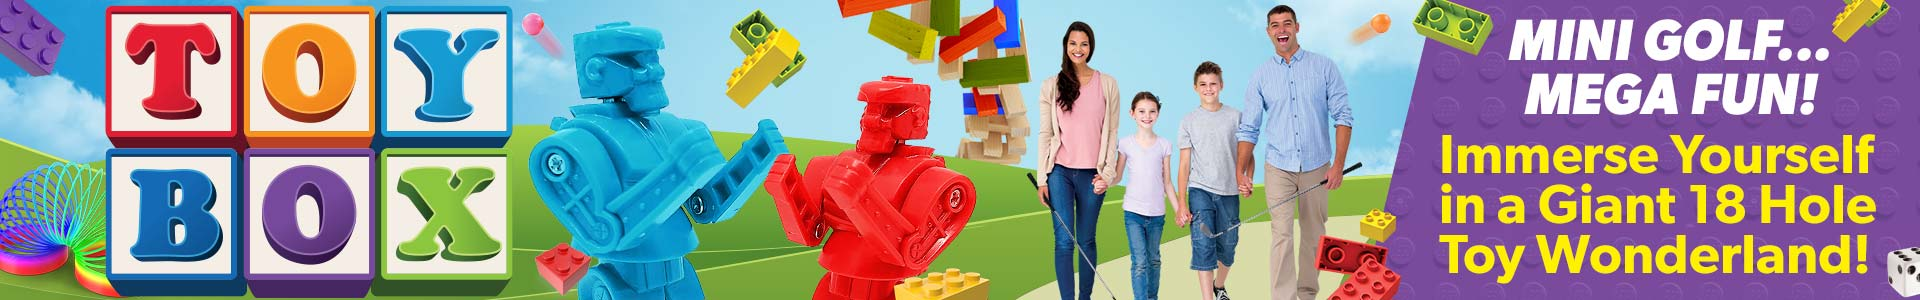 Ad - Toy Box Mini Golf: Click to visit website.